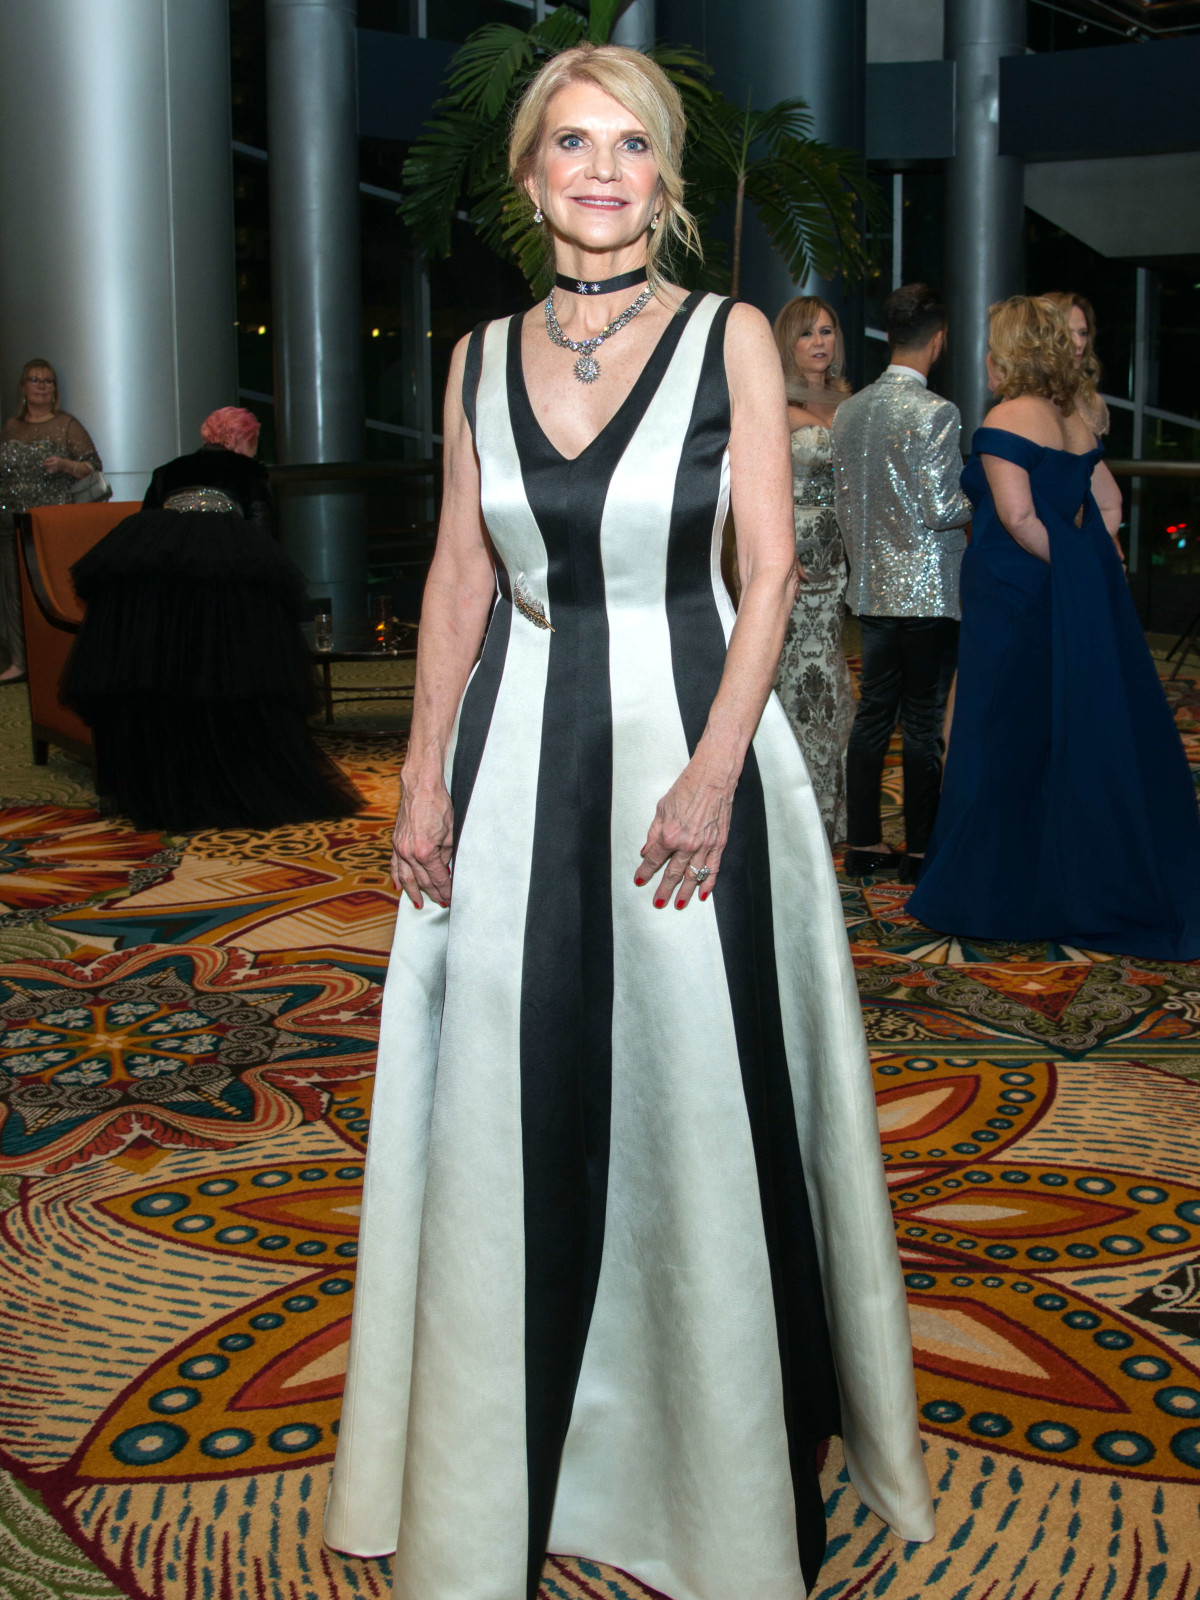 Houston, Women of Distinction fashionable gowns, Feb 2017, Kim Tutcher